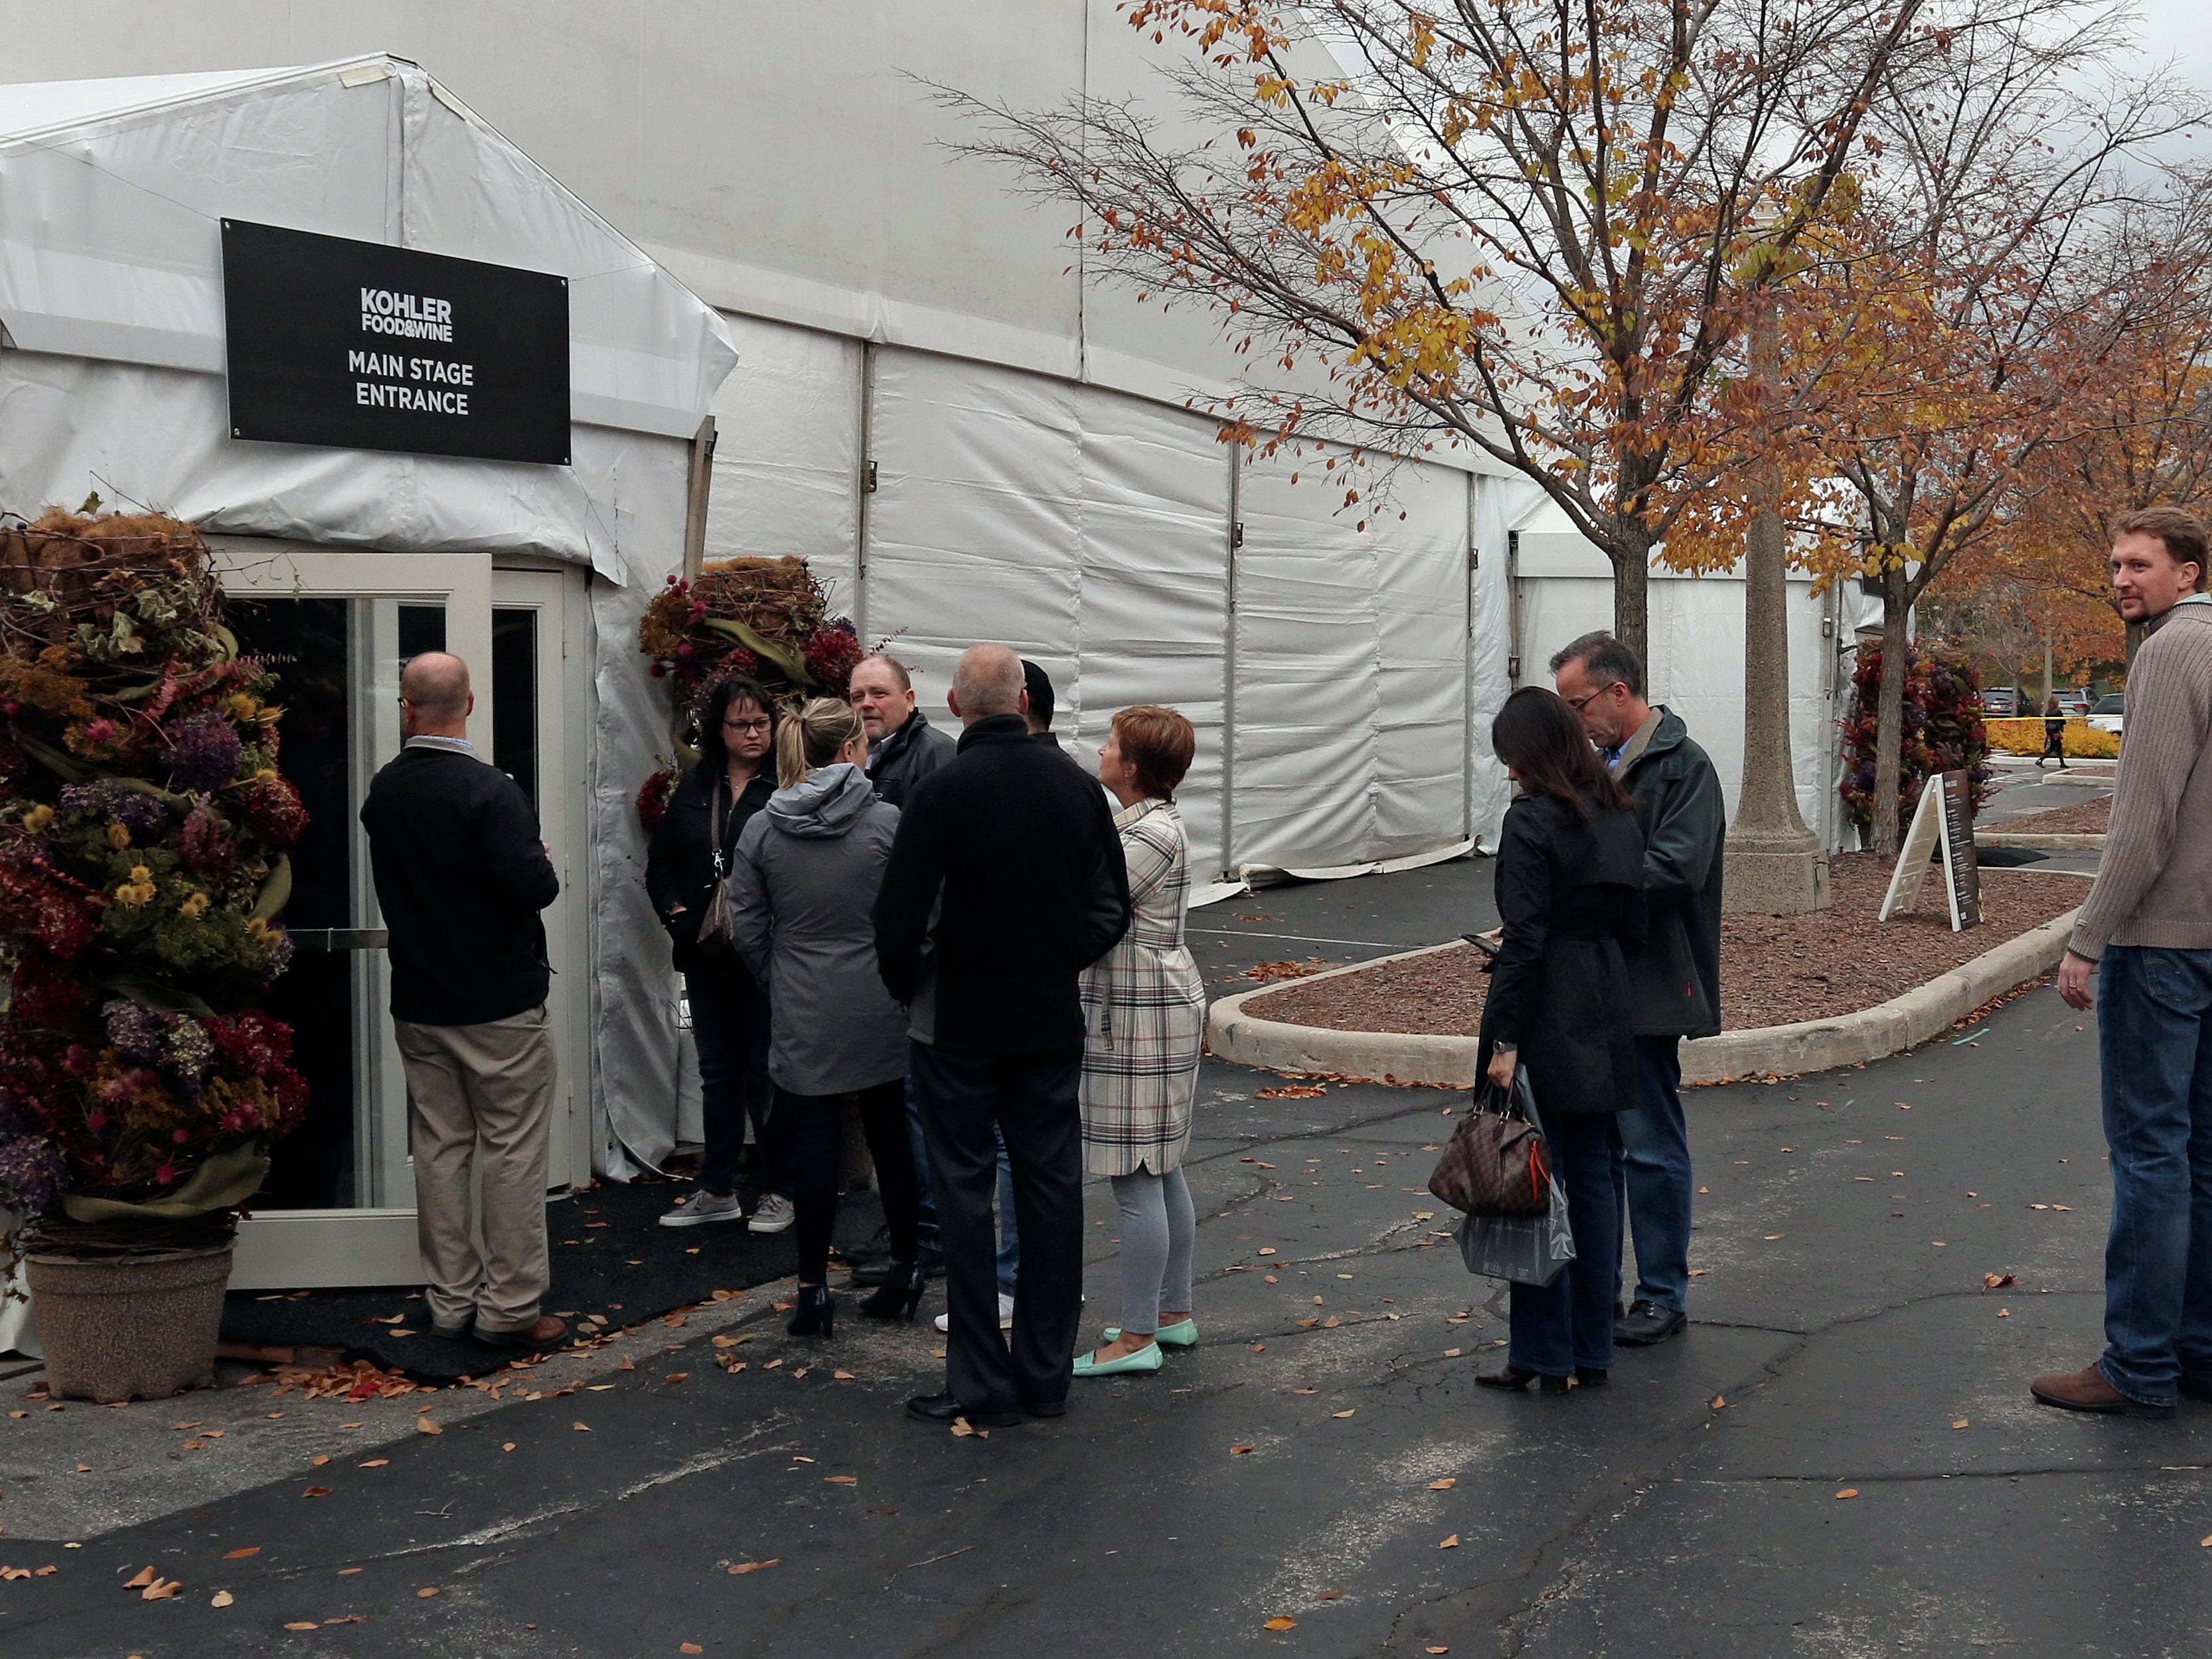 People wait in line to see a presentation at Kohler Food and Wine, Friday, October 19, 2018, in Kohler, Wis.